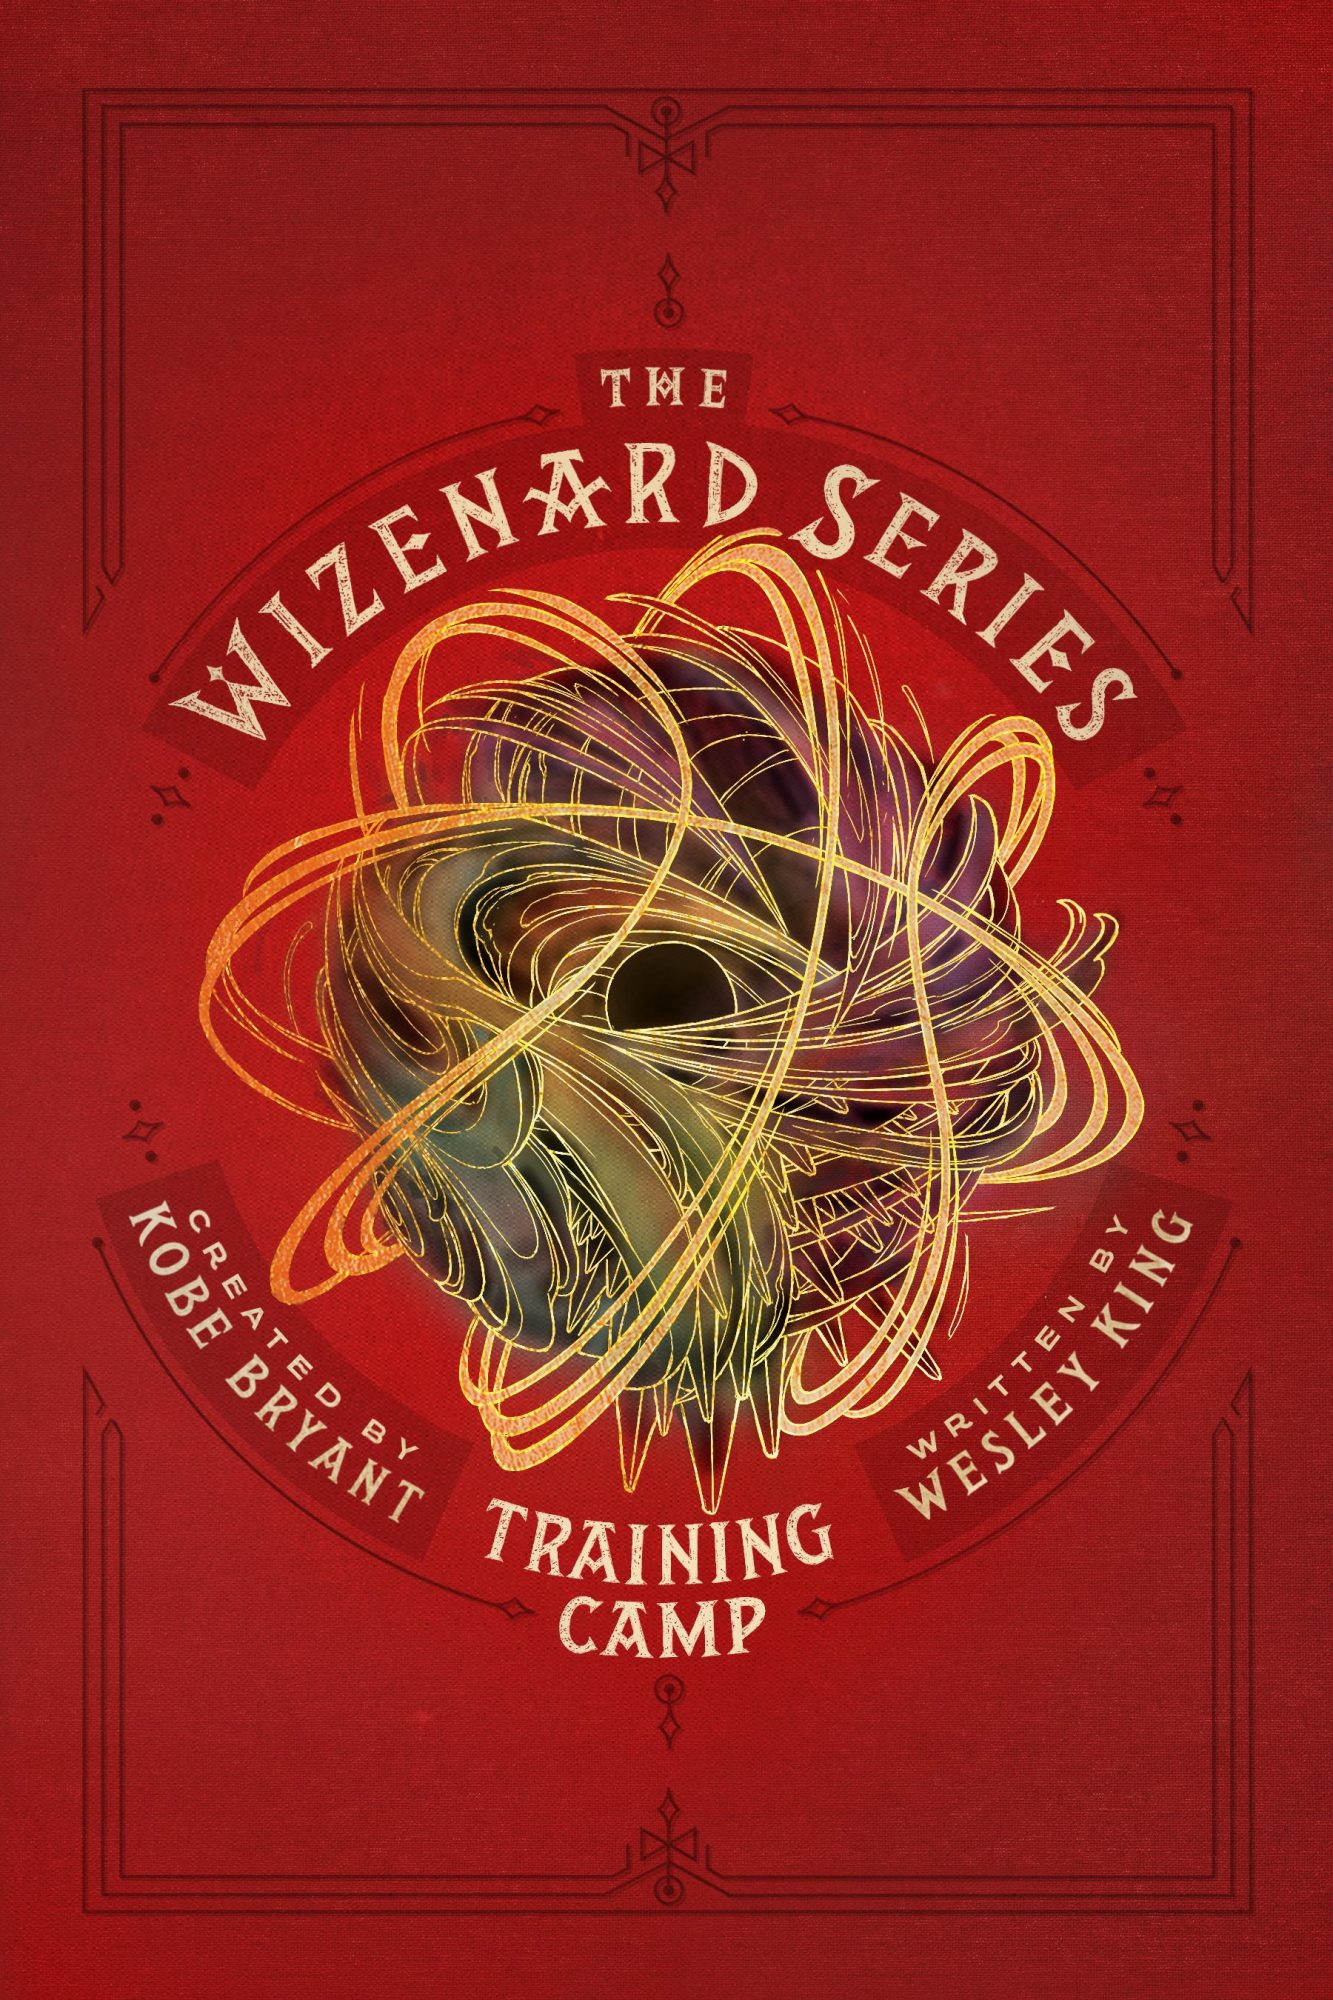 The Wizenard Series: Training Camp by Kobe Bryant and Wesley King